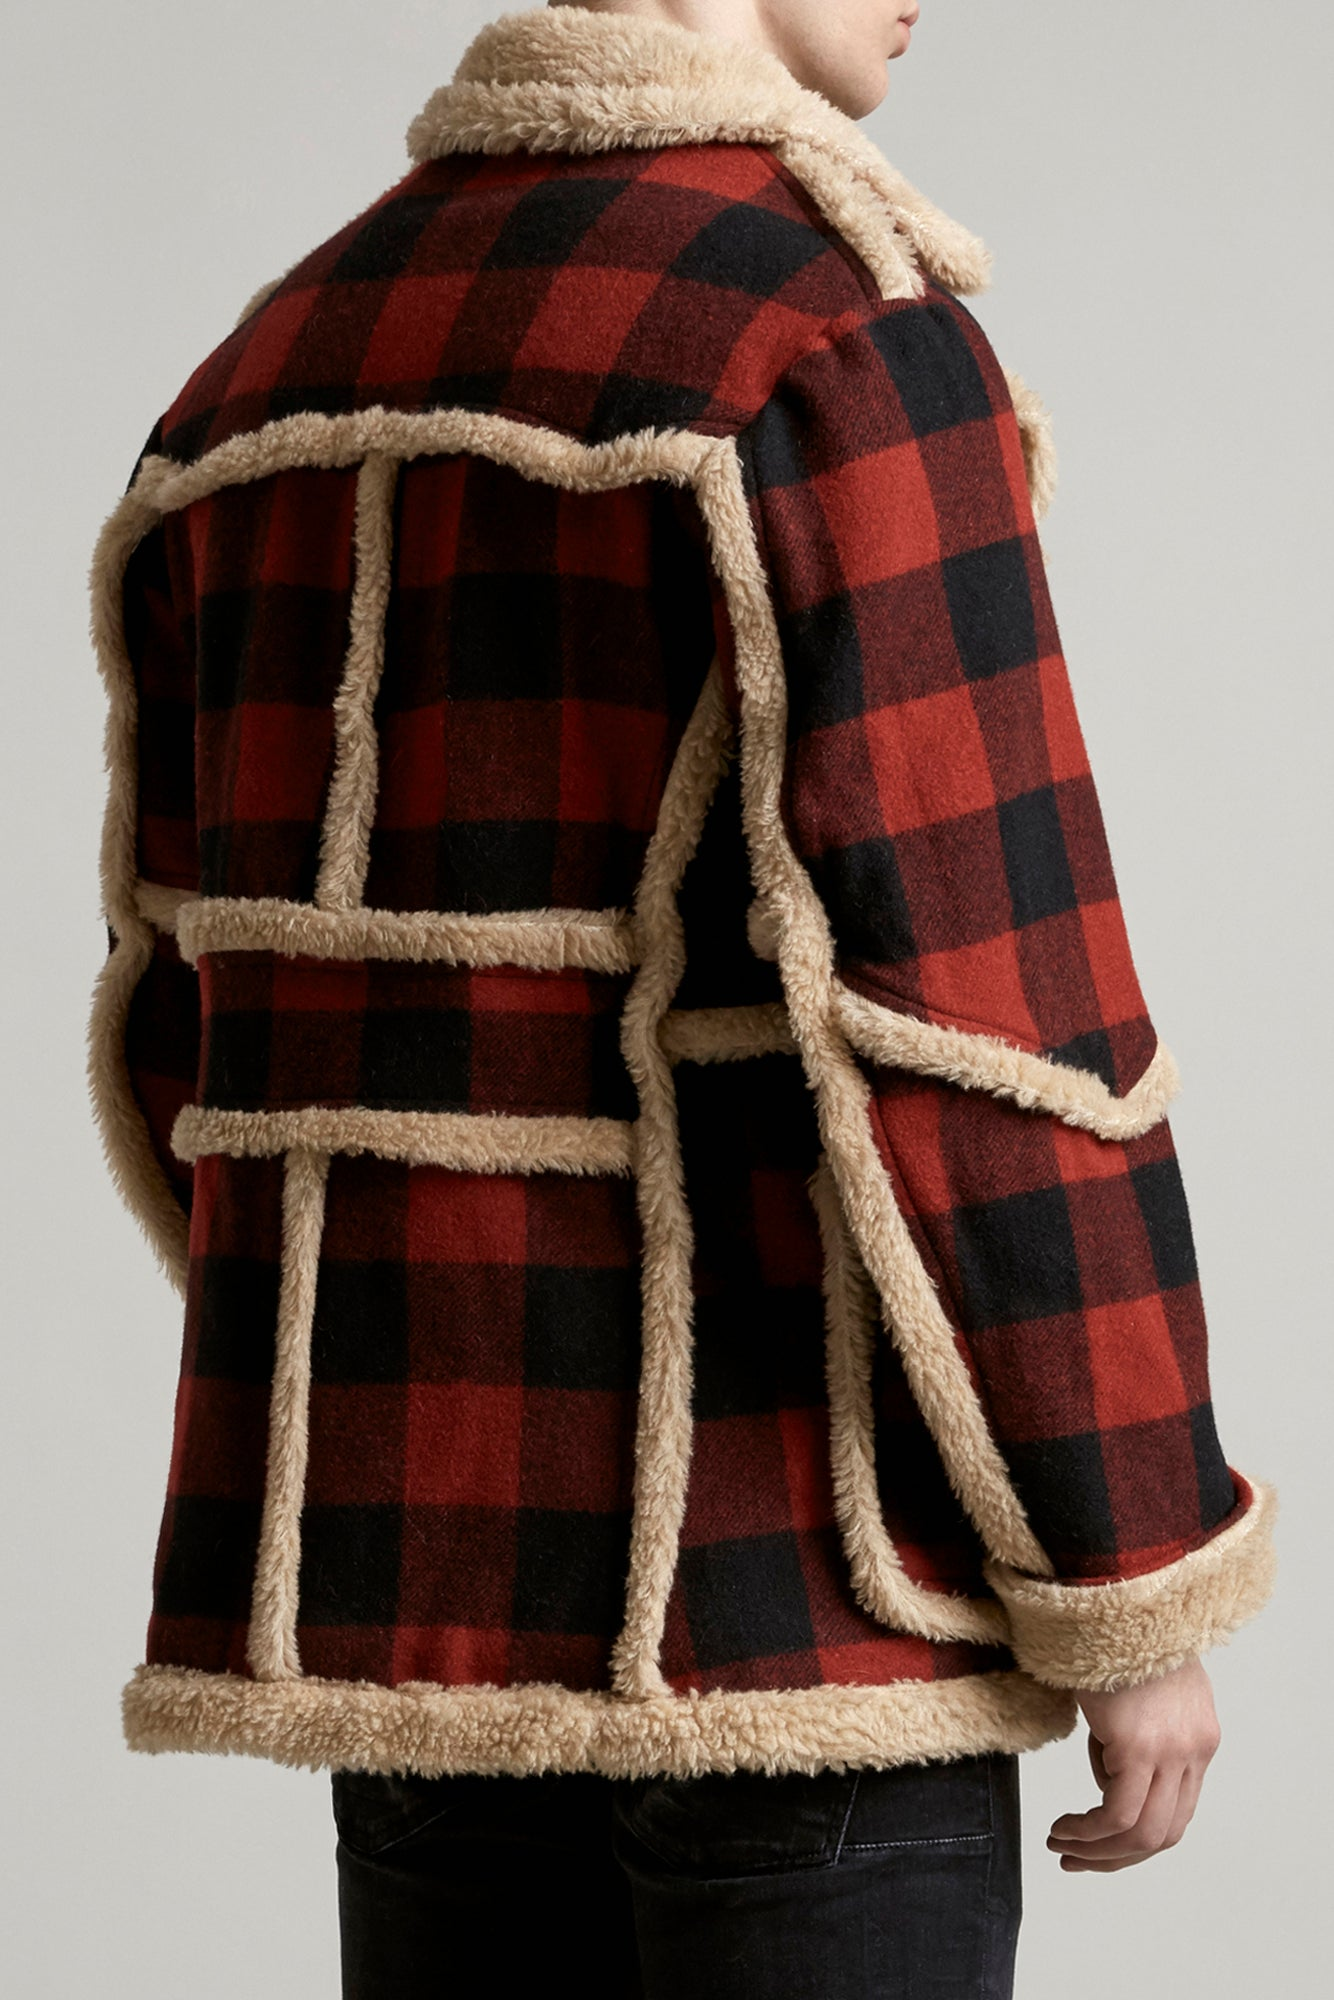 R13 imitation sheepskin oversized coat with two pockets in red and black tartan